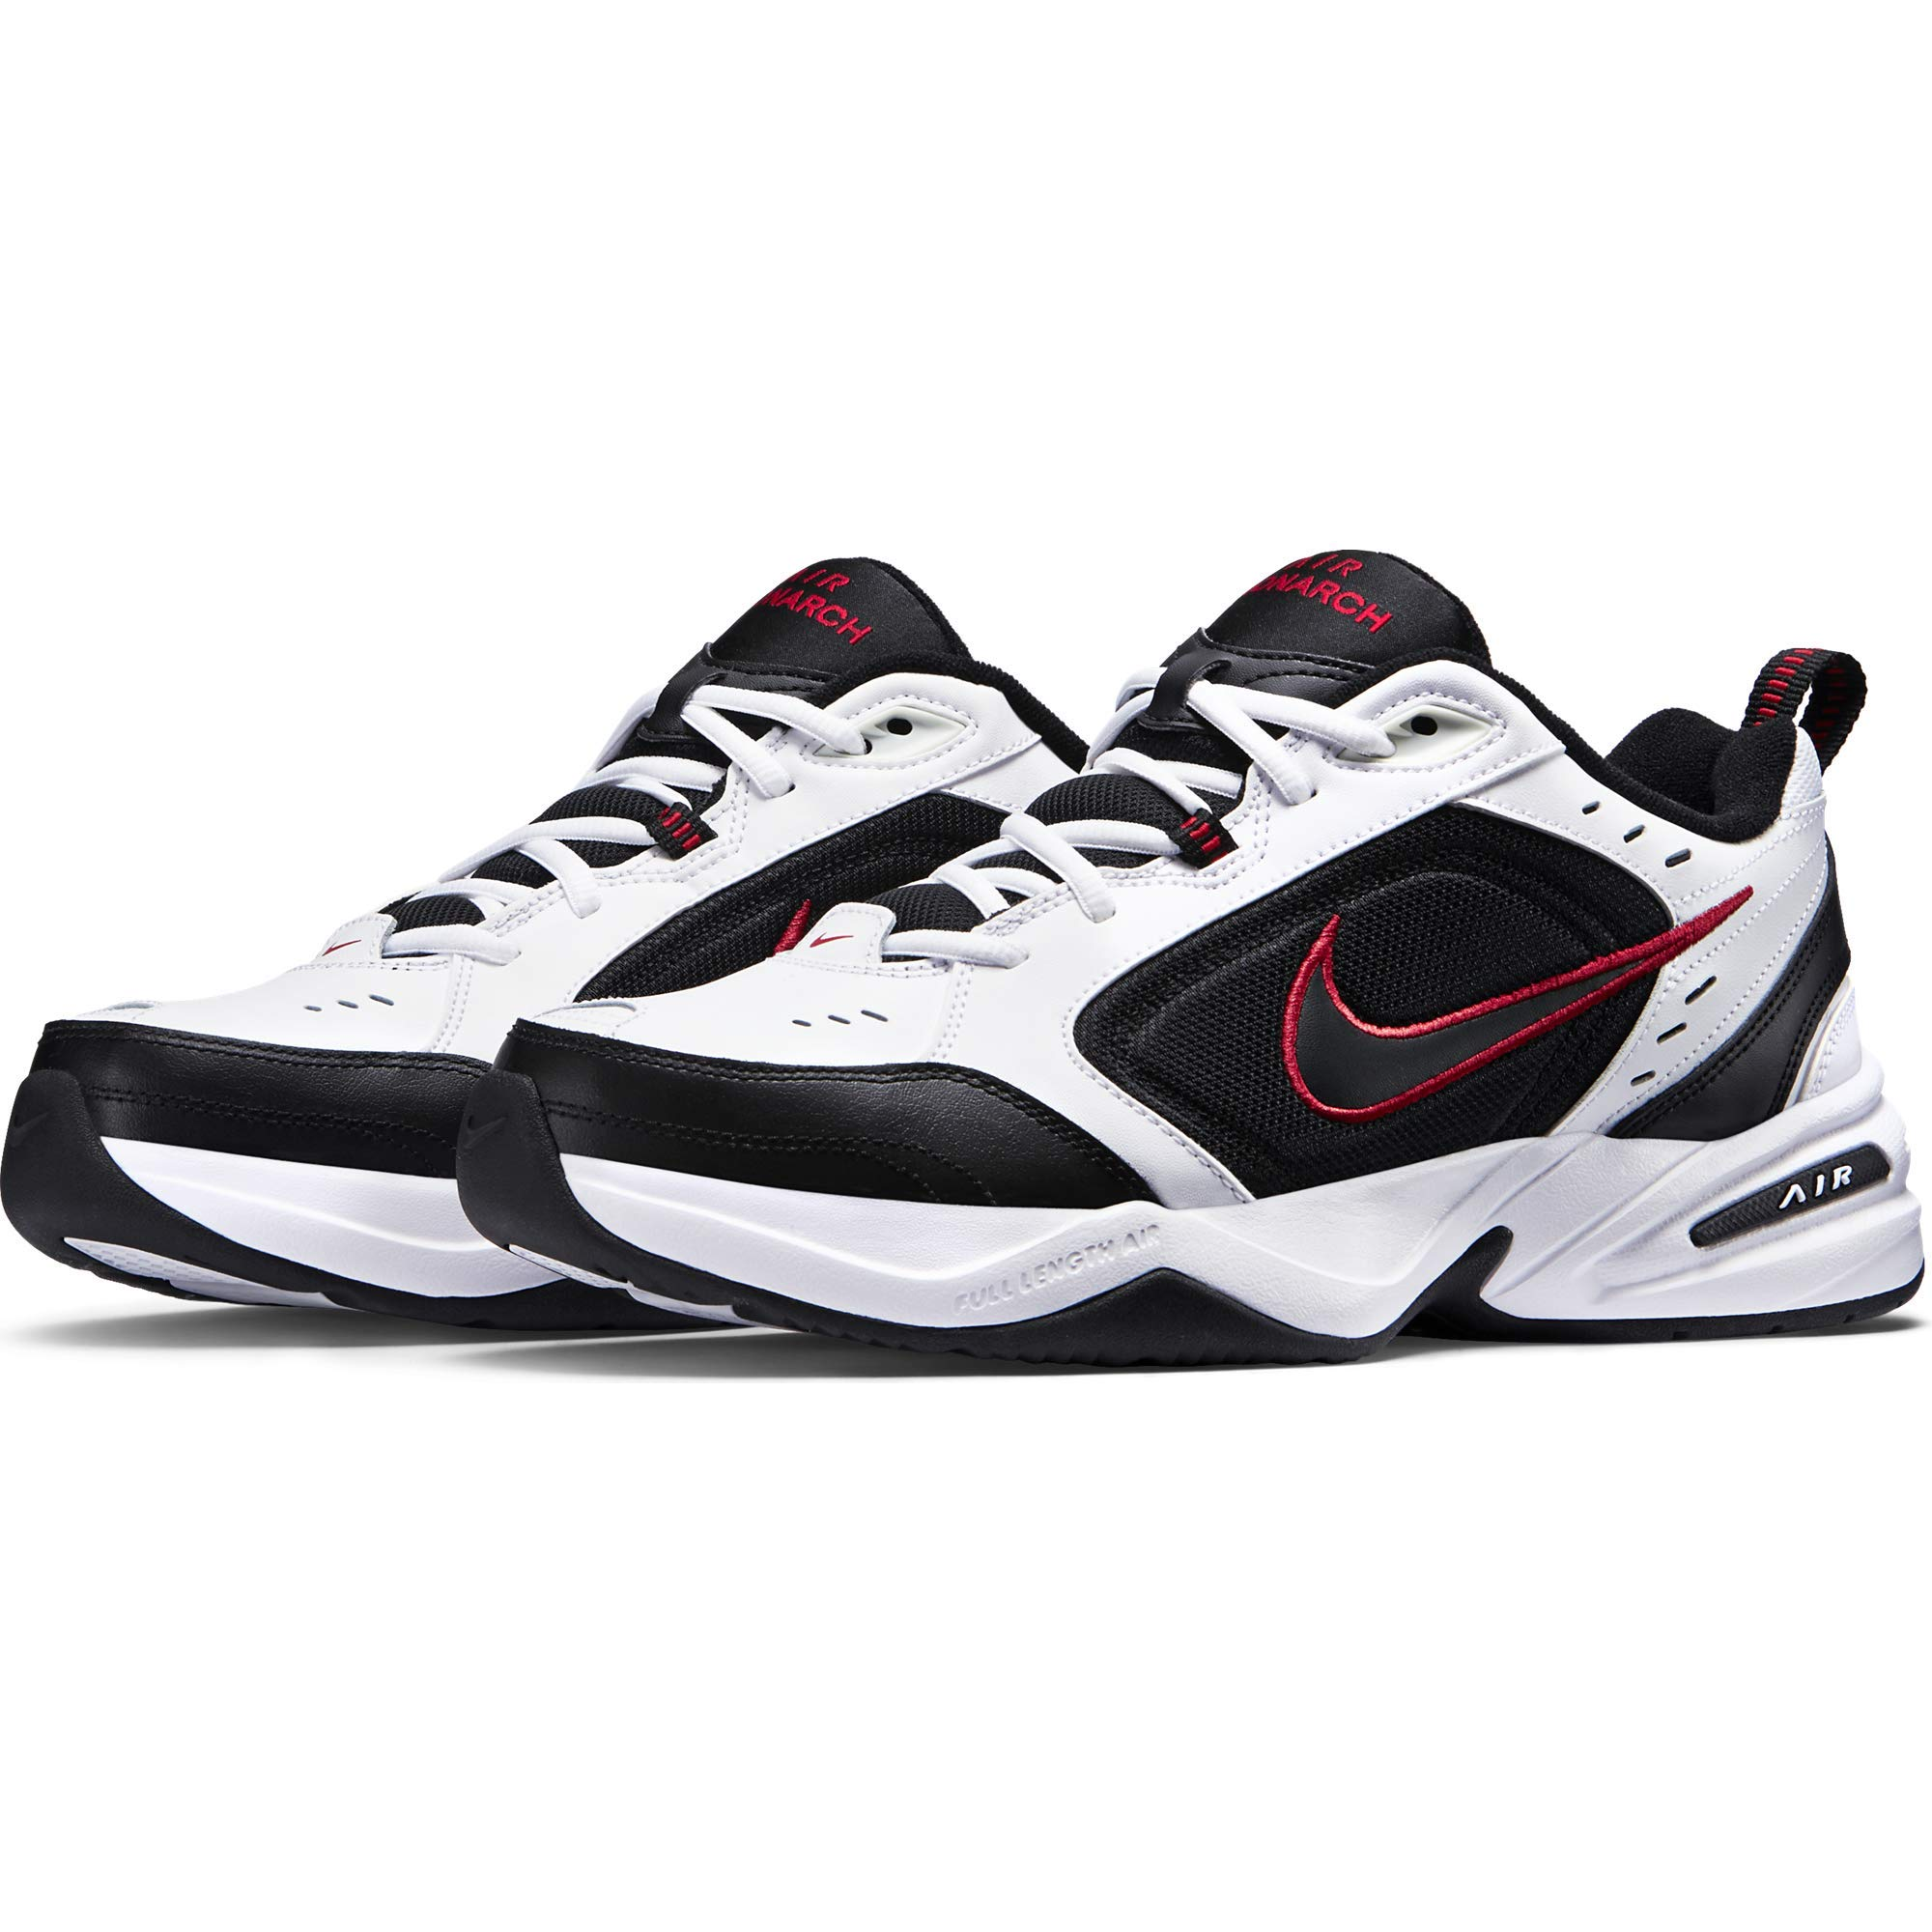 Nike Air Monarch IV Training Shoe (4E) - White/Black/Varsity Red, Size 8 US by Nike